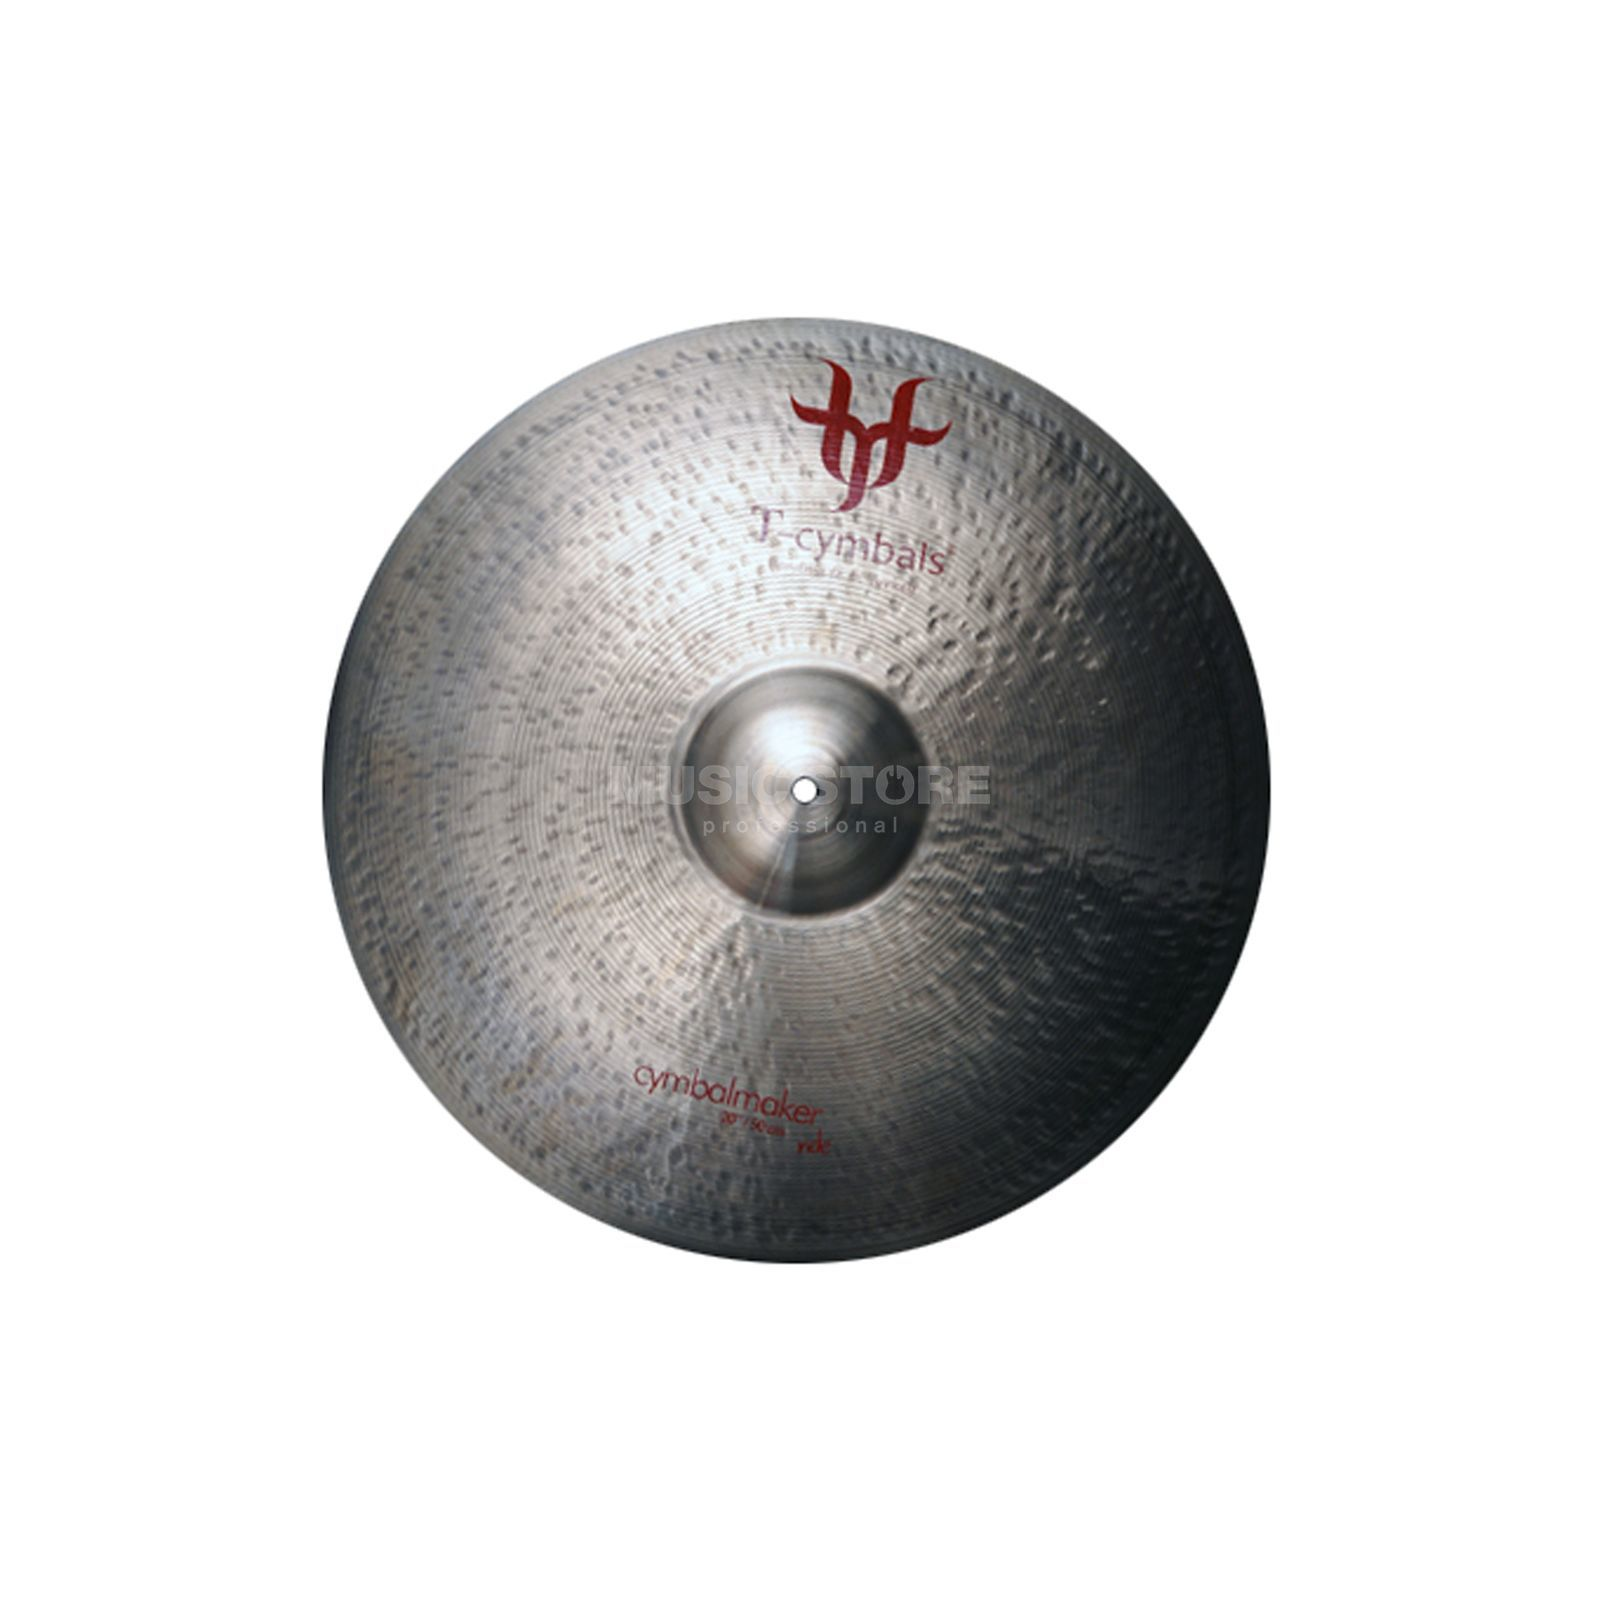 "T-Cymbals Cymbalmaker Ride 22""  Product Image"